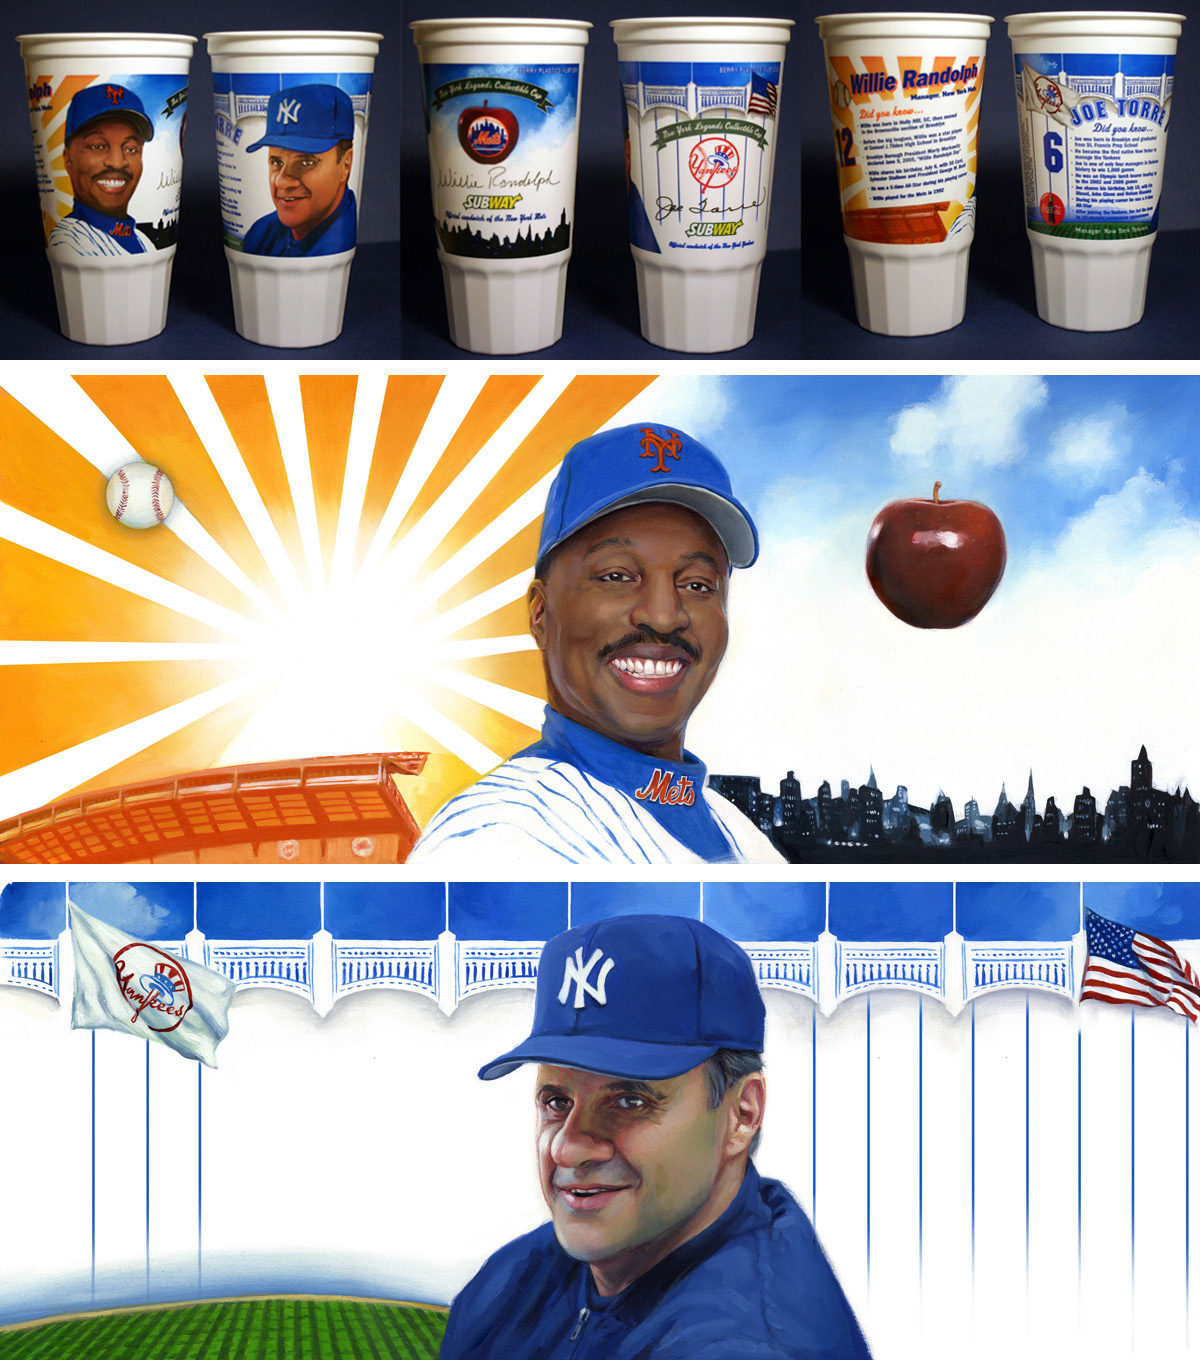 'MLB Coaches Willie Randolph and Joe Torre', for Subway, 2006